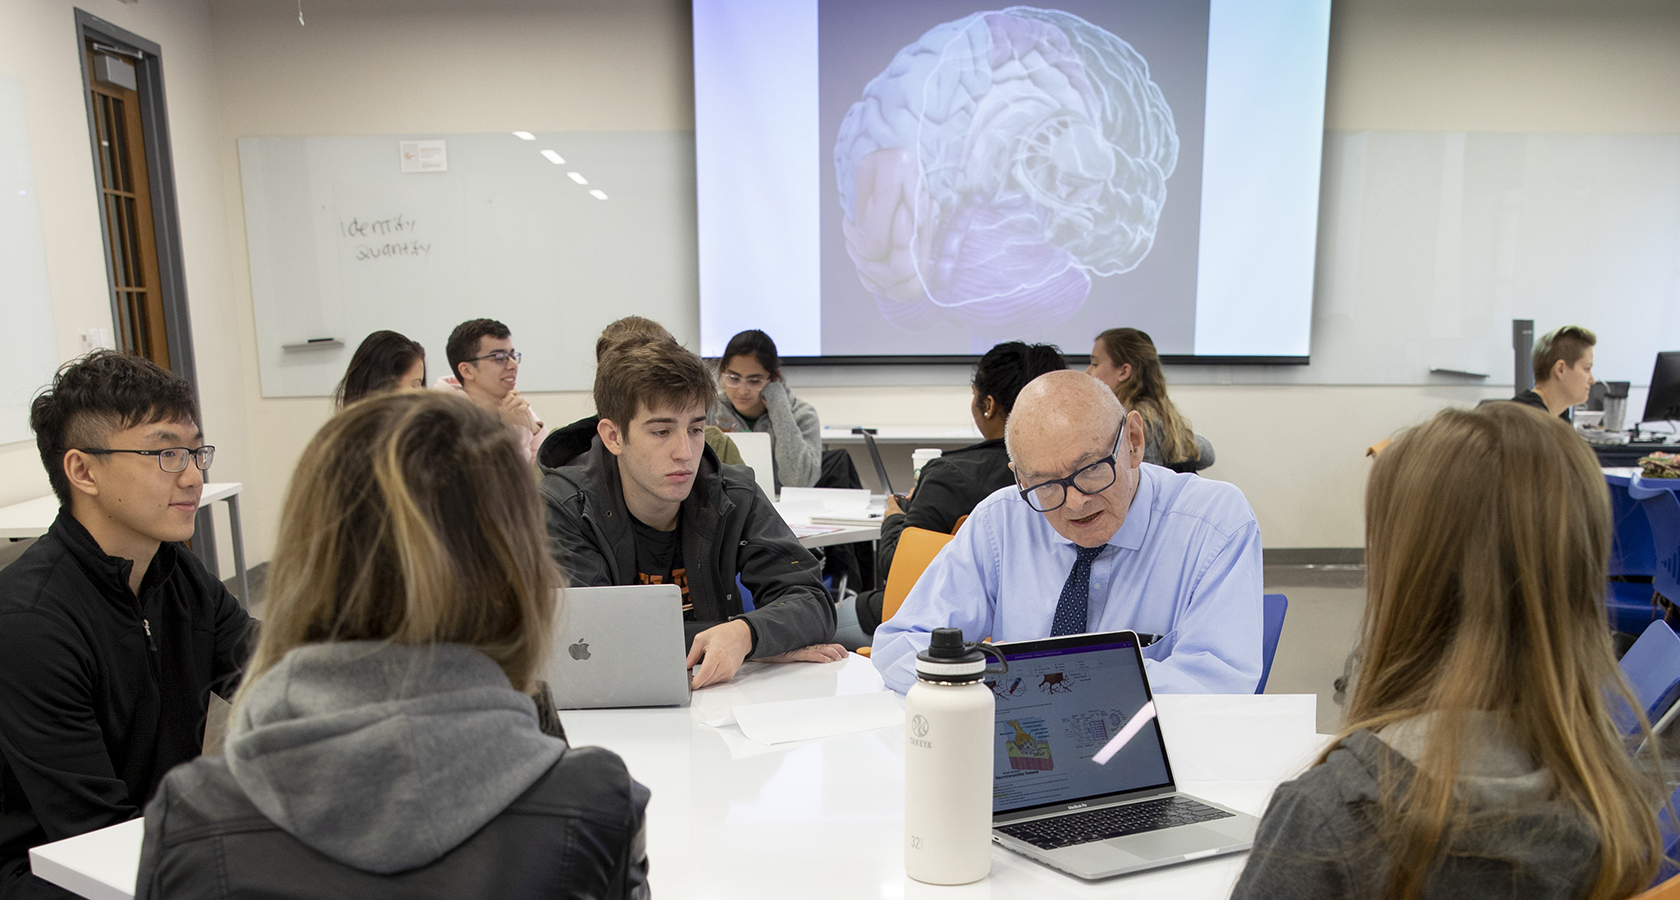 Professor Steven Kornguth talking with students during class.